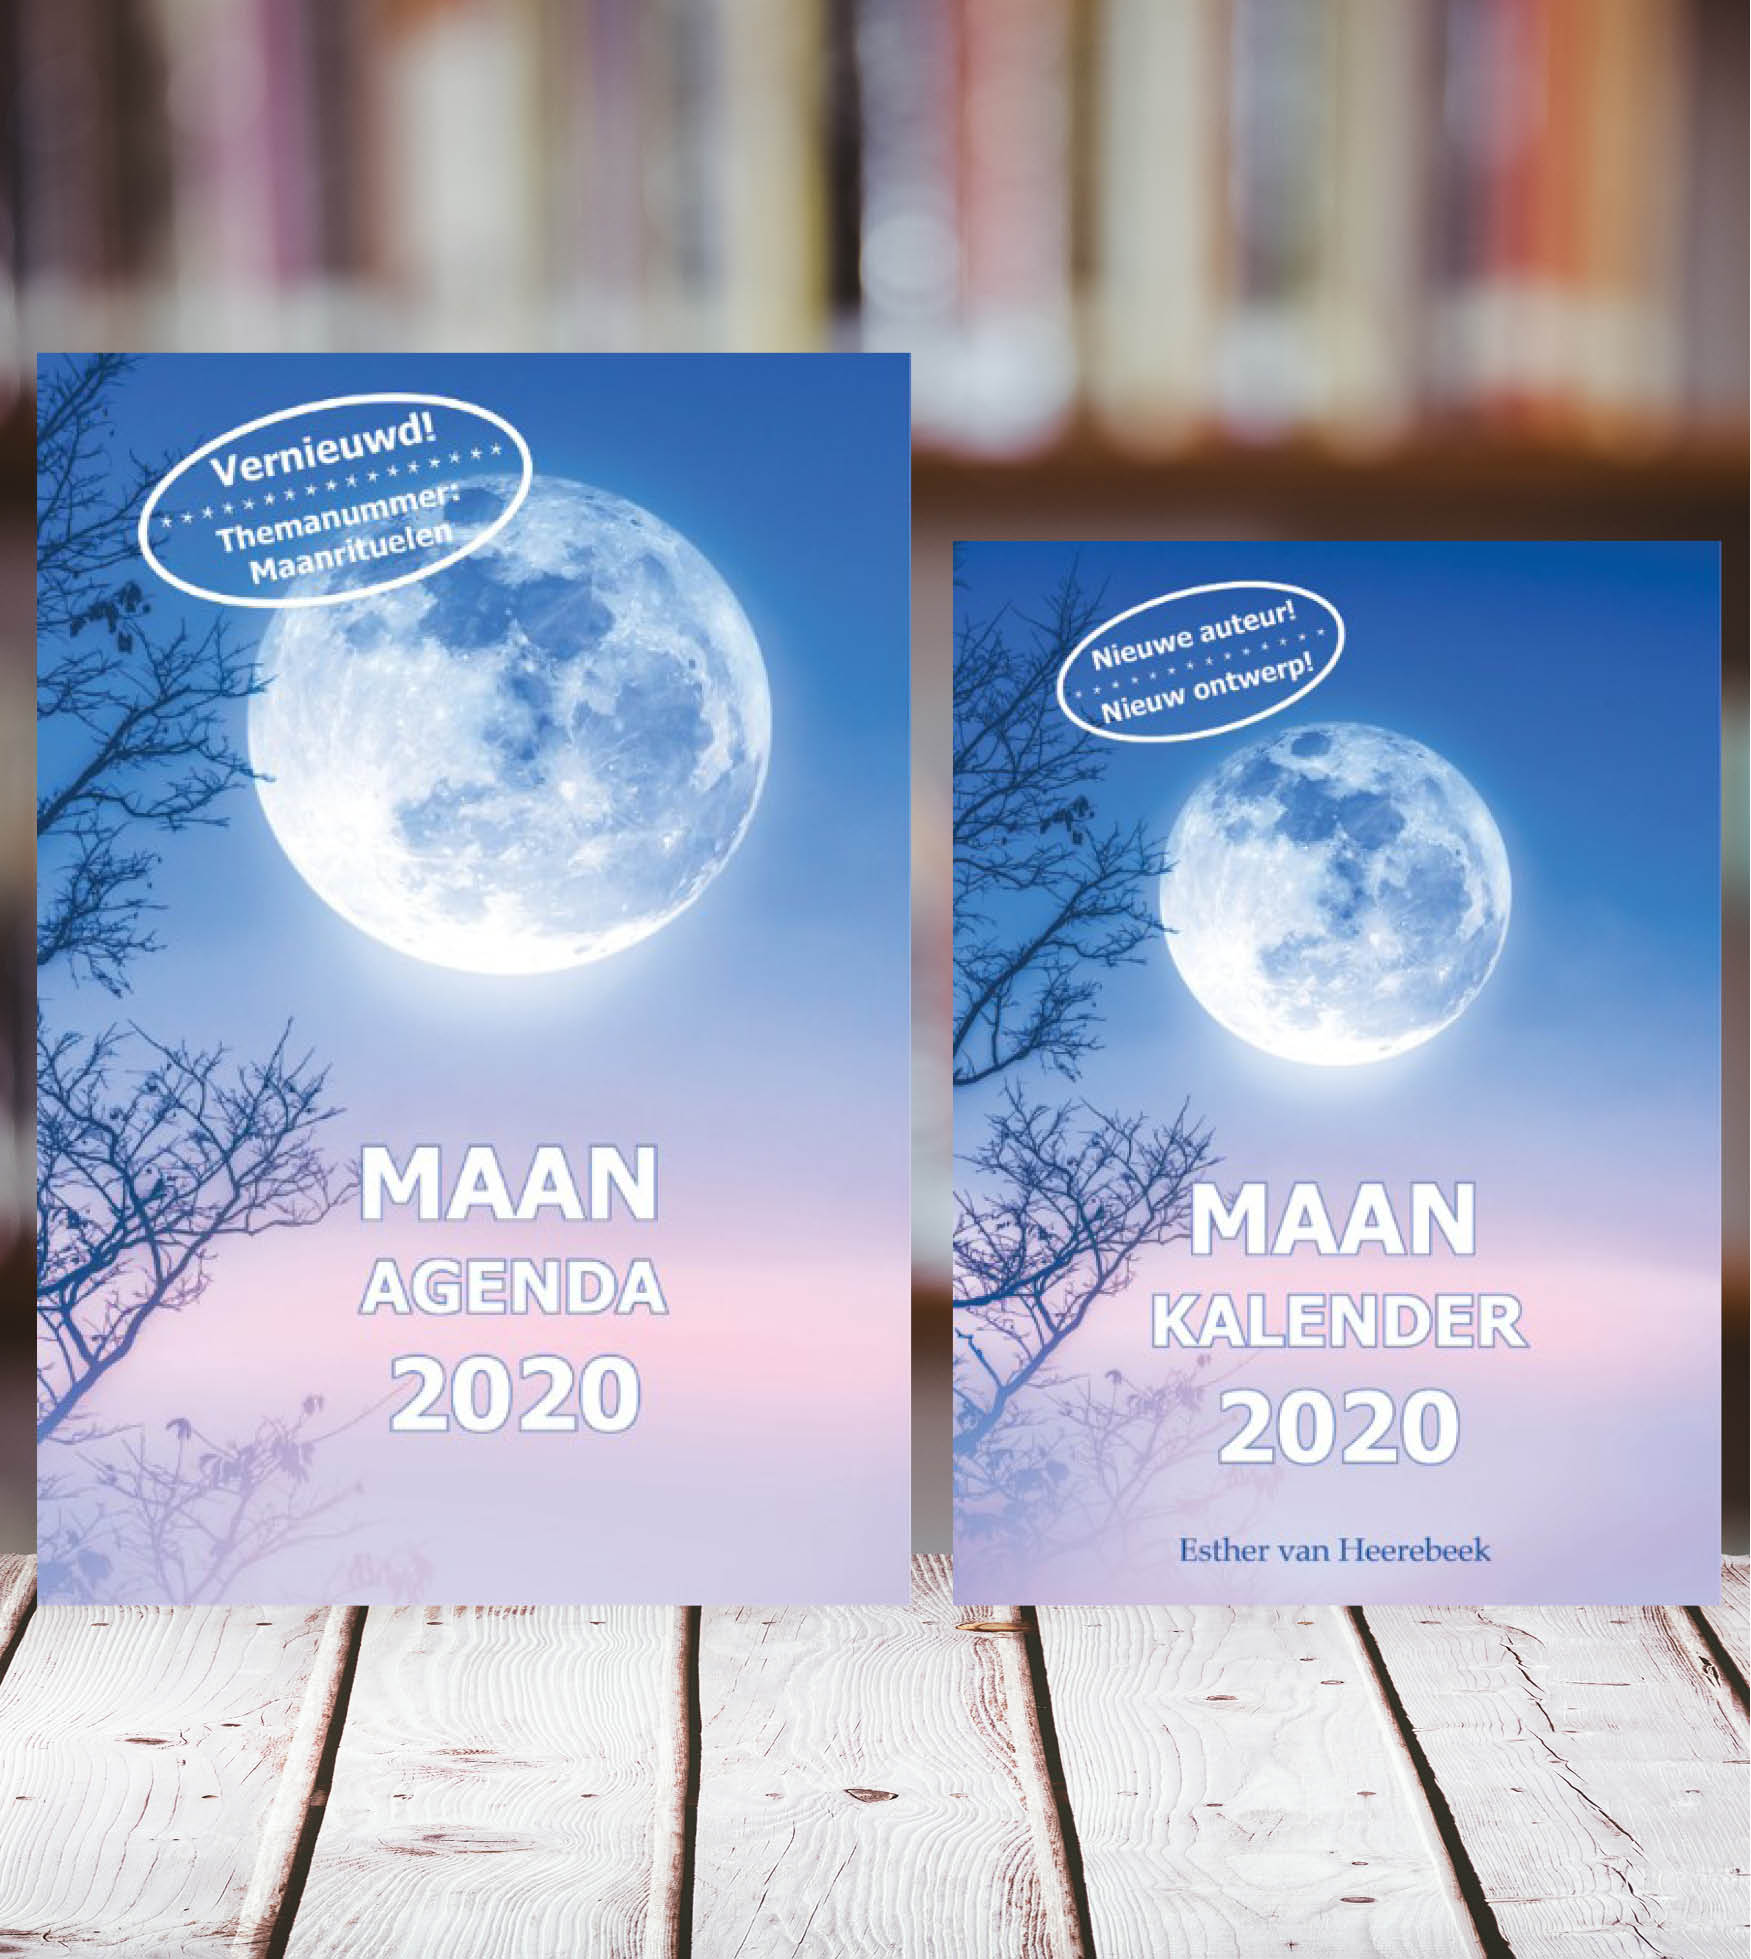 Photo of Maankalender en Maanagenda